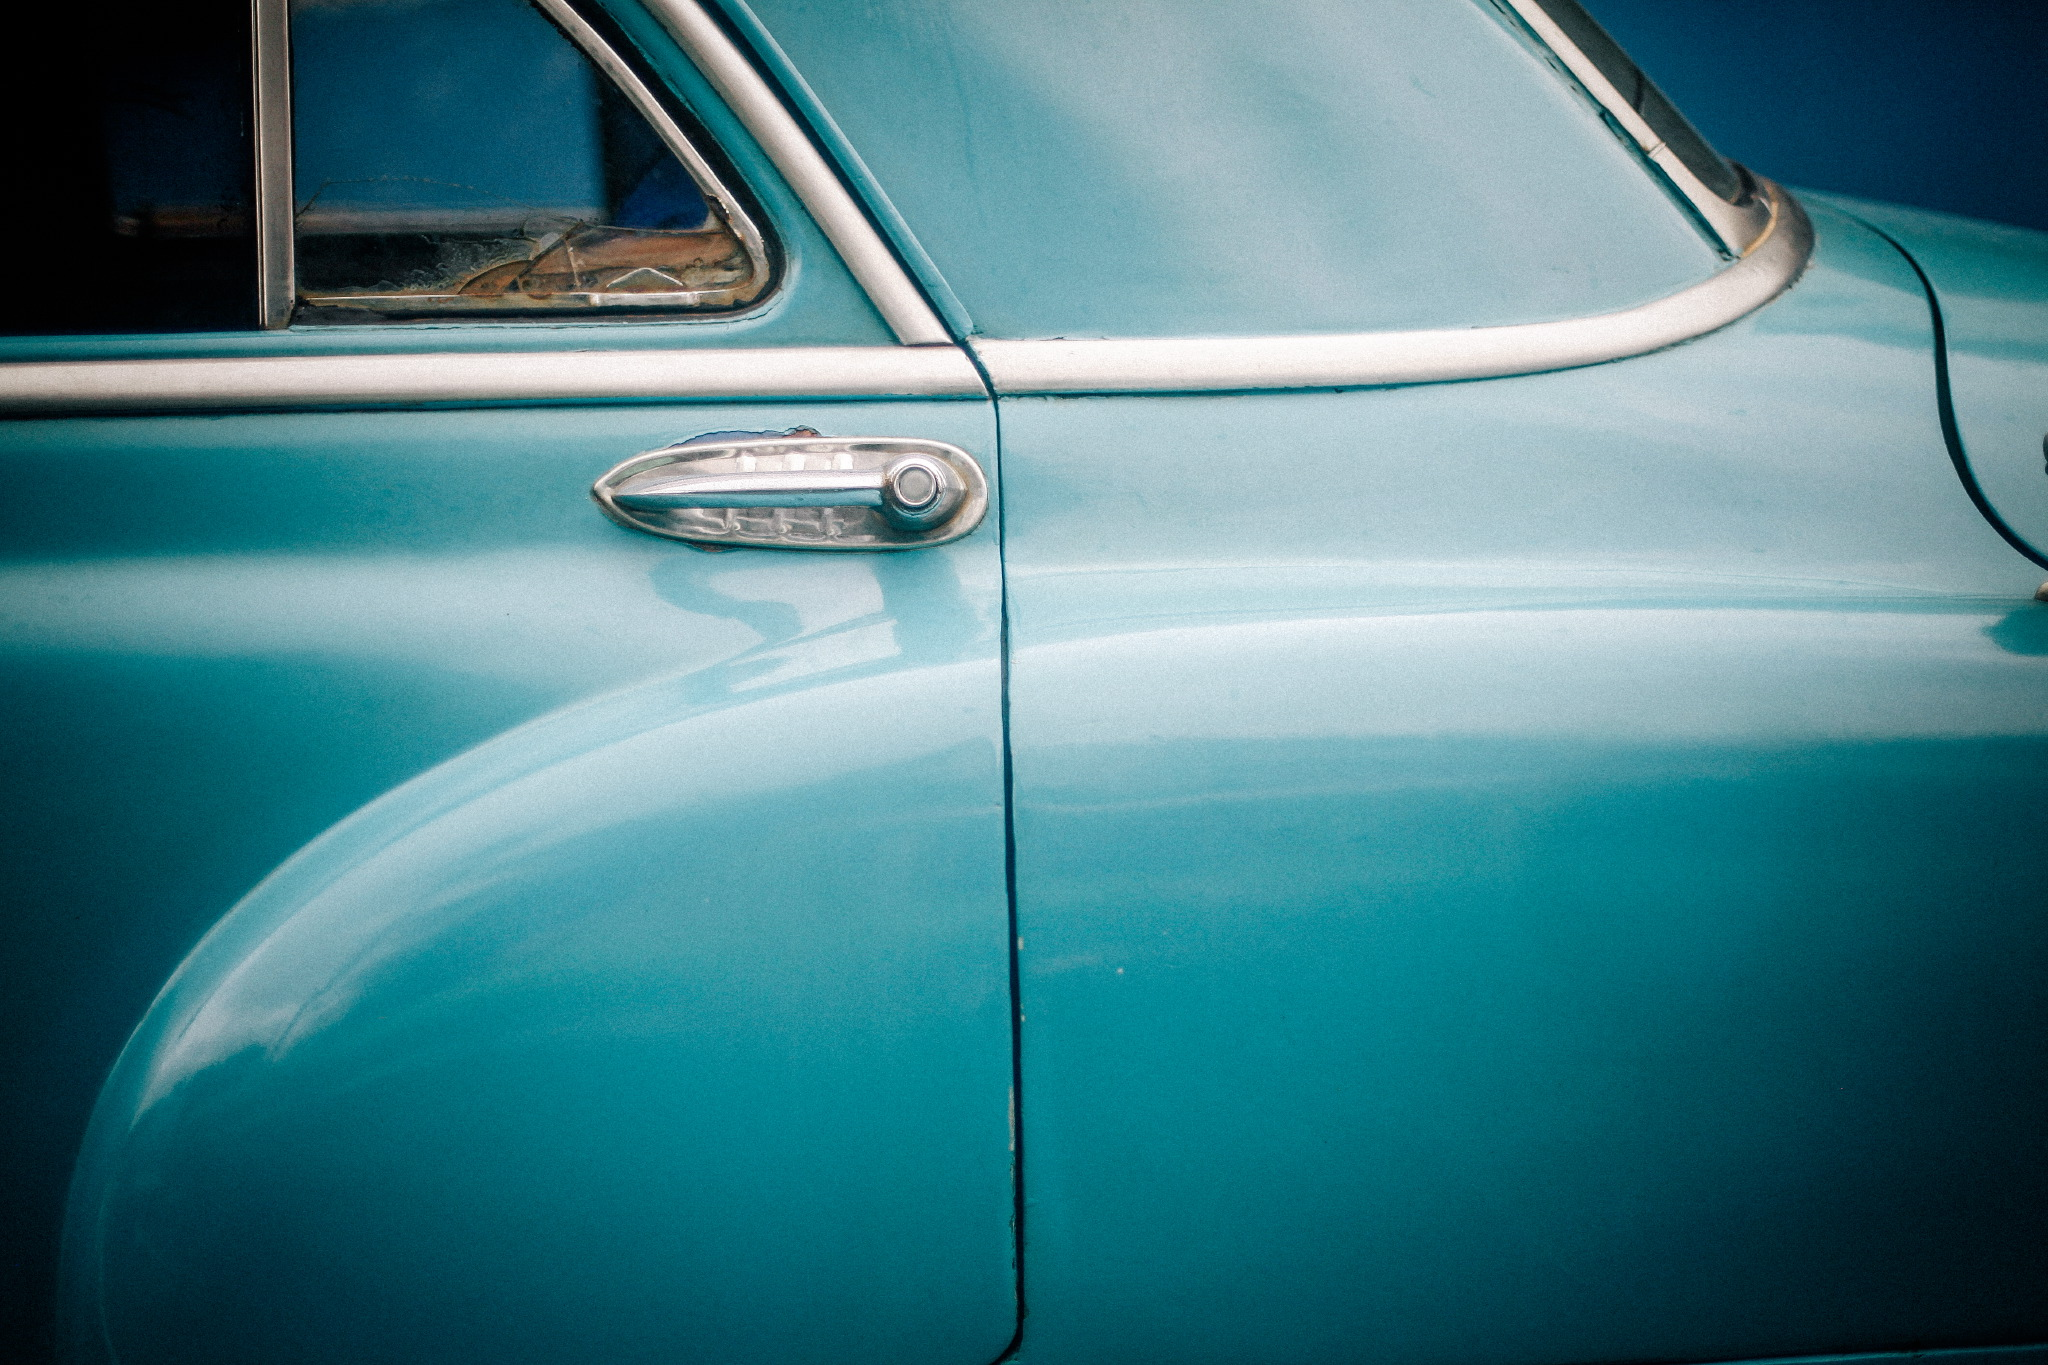 san diego wedding   photographer | closeup of teal car's door handle